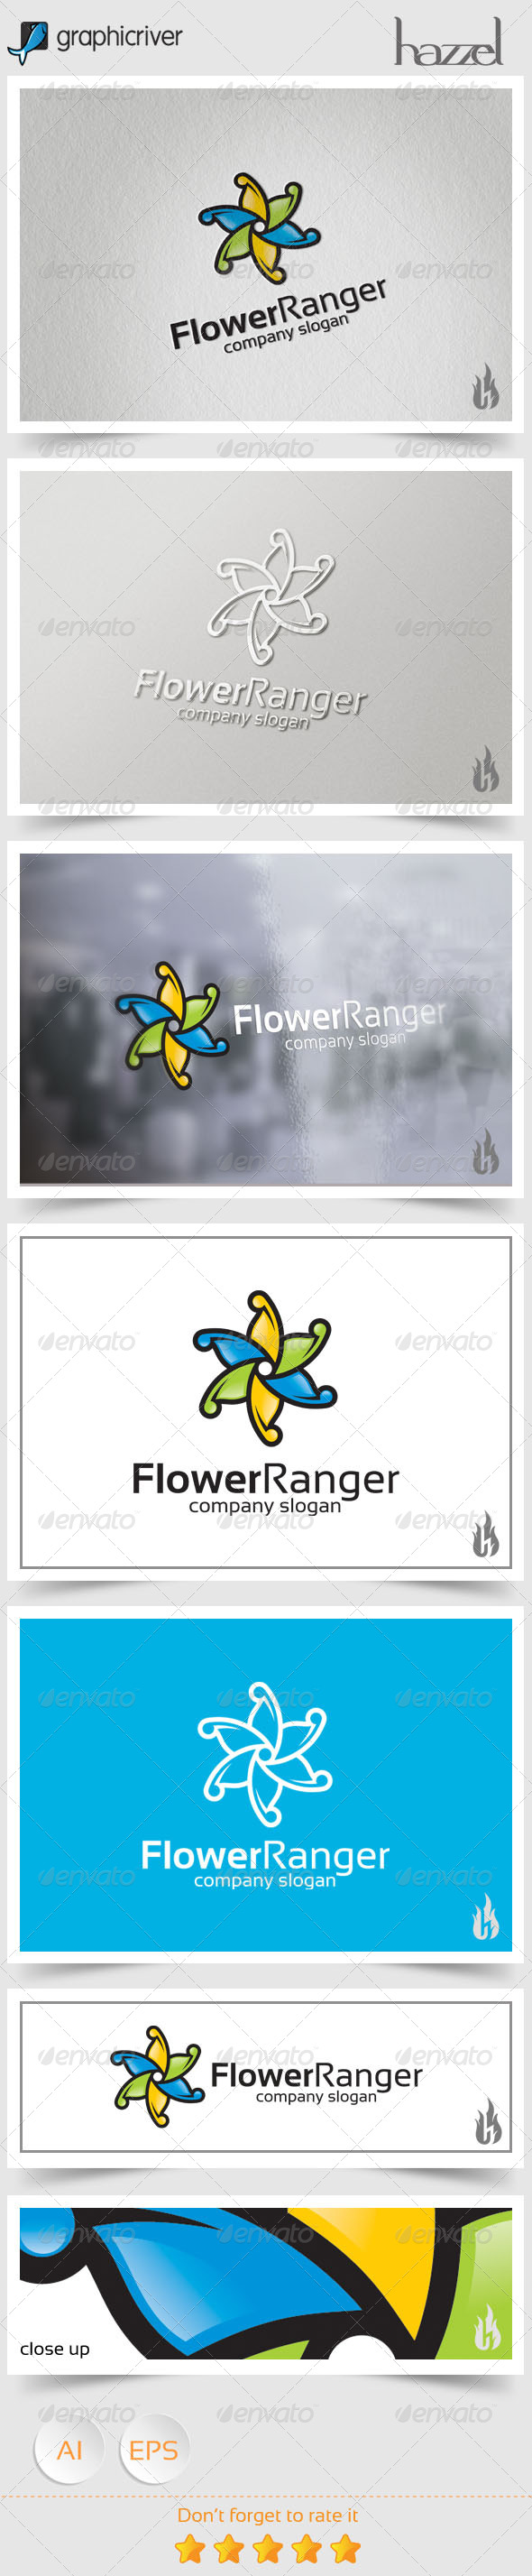 GraphicRiver Flower Ranger Logo 8606175